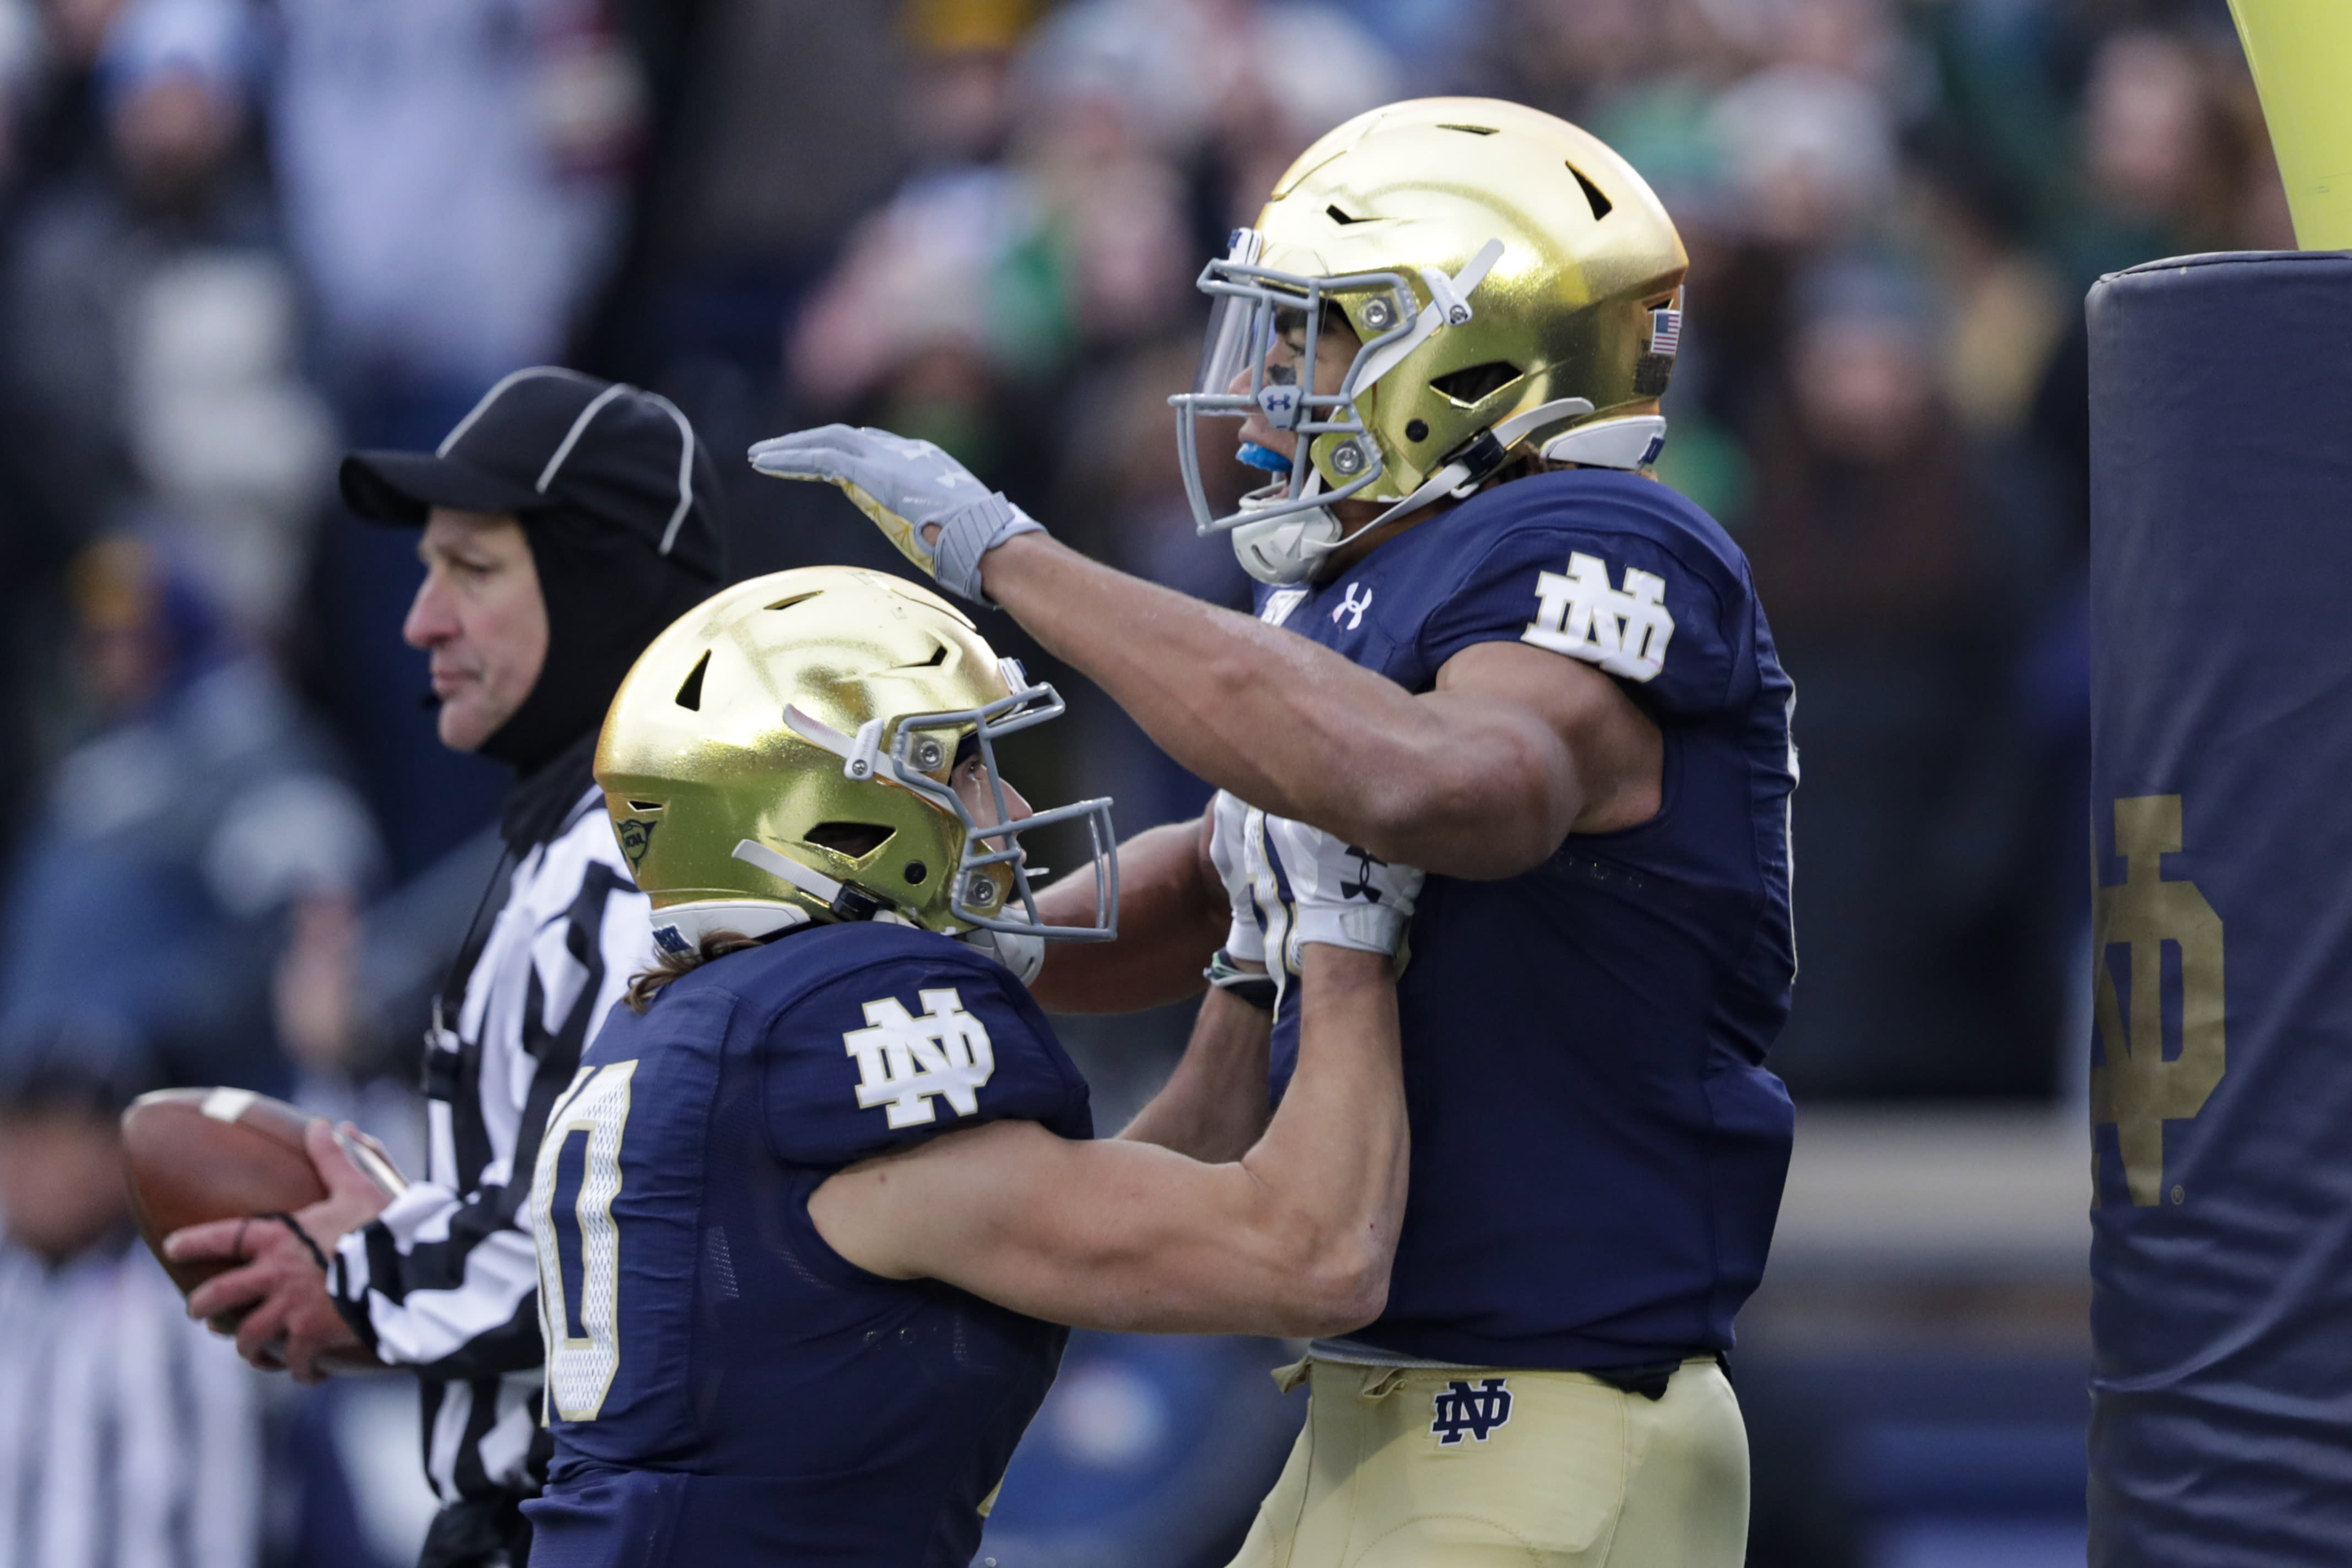 Notre Dame wide receiver Chase Claypool (83) celebrates his touchdown against Boston College with wide receiver Chris Finke (10) during the first half of an NCAA college football game in South Bend, Ind., Saturday, Nov. 23, 2019. (AP Photo/Michael Conroy)